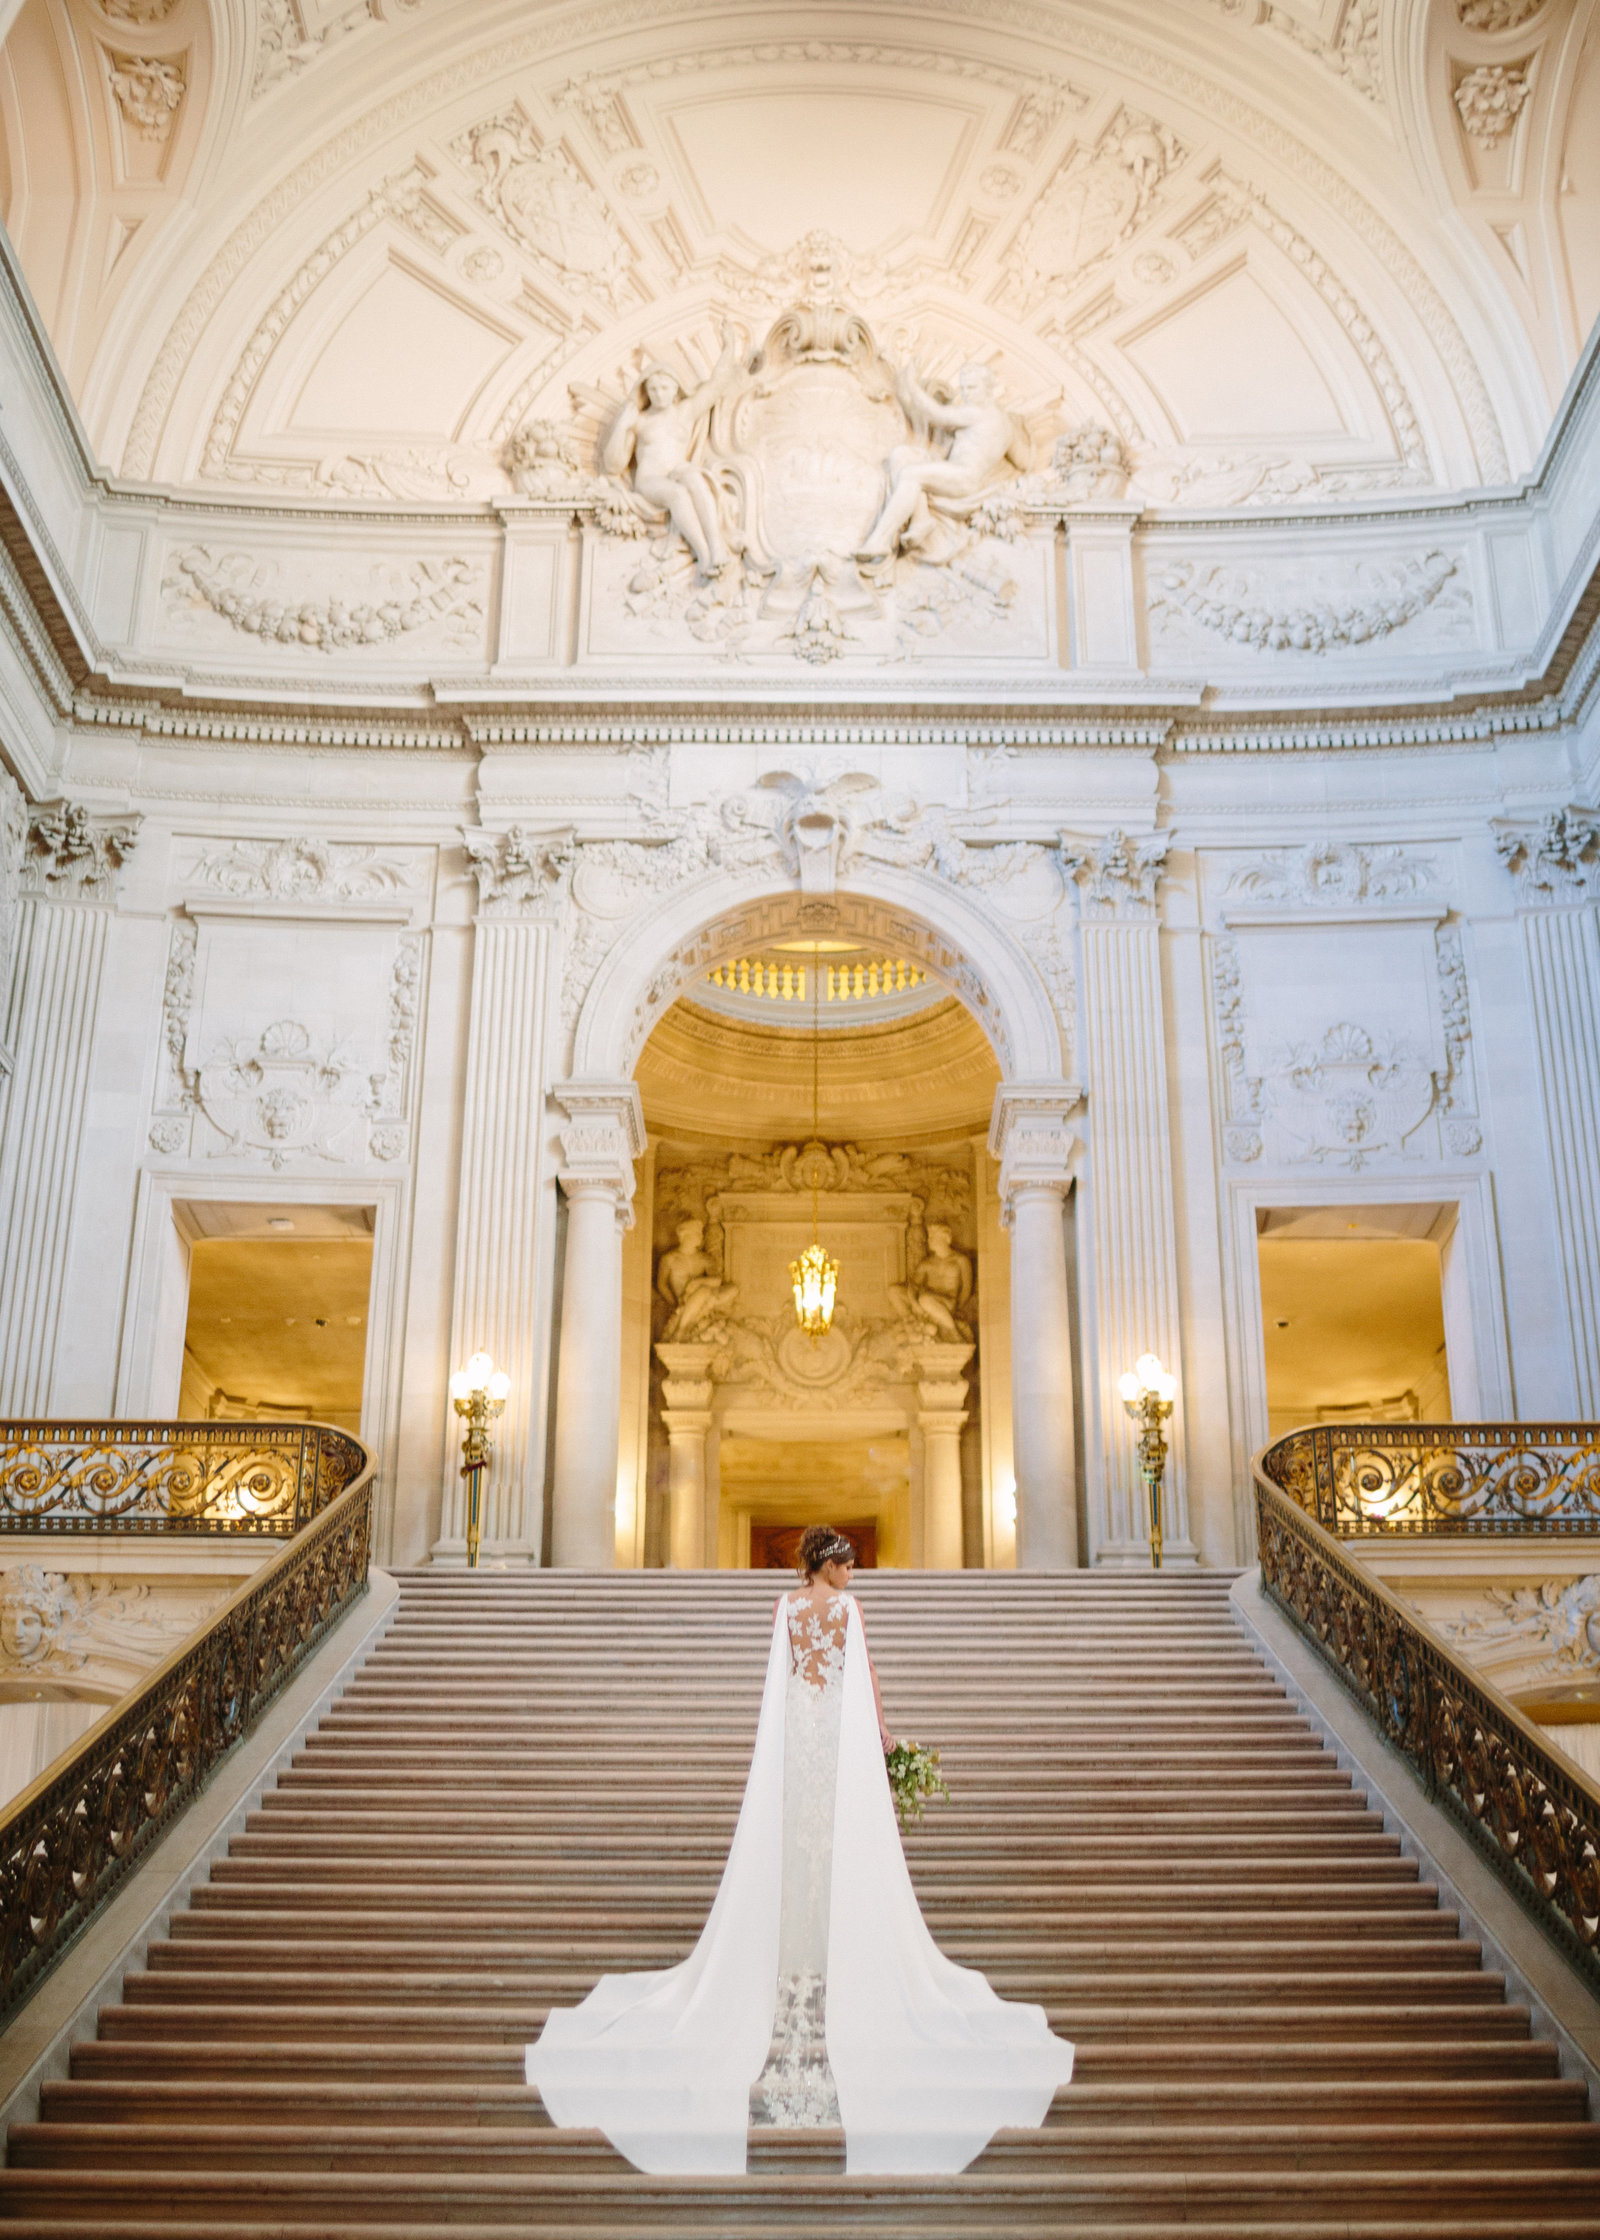 022-larissa-cleveland-editorial-fashion-wedding_photographer-san-francisco-carmel-napa-california-larissa-cleveland-grecian-cape-dress-003